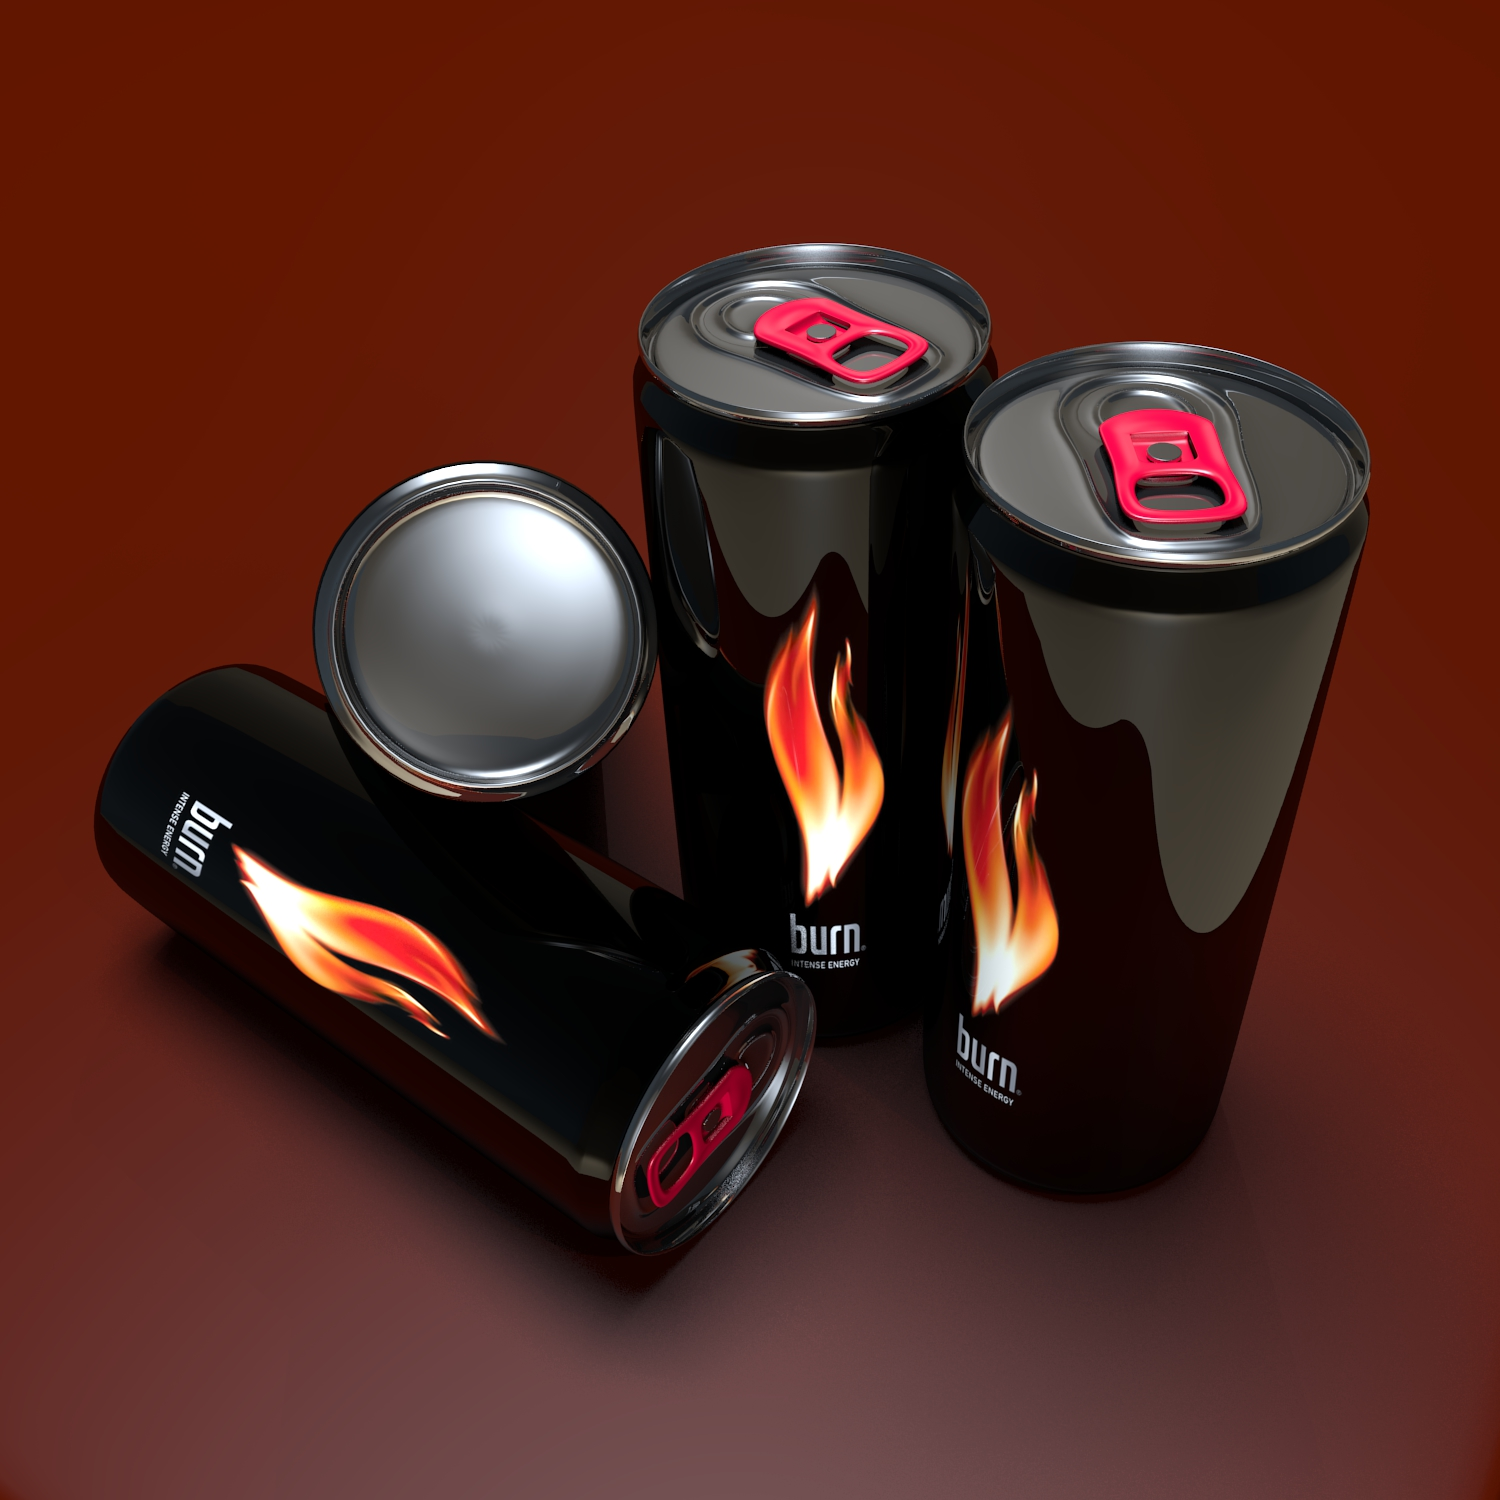 energy drink burn 3d model blend obj 119297